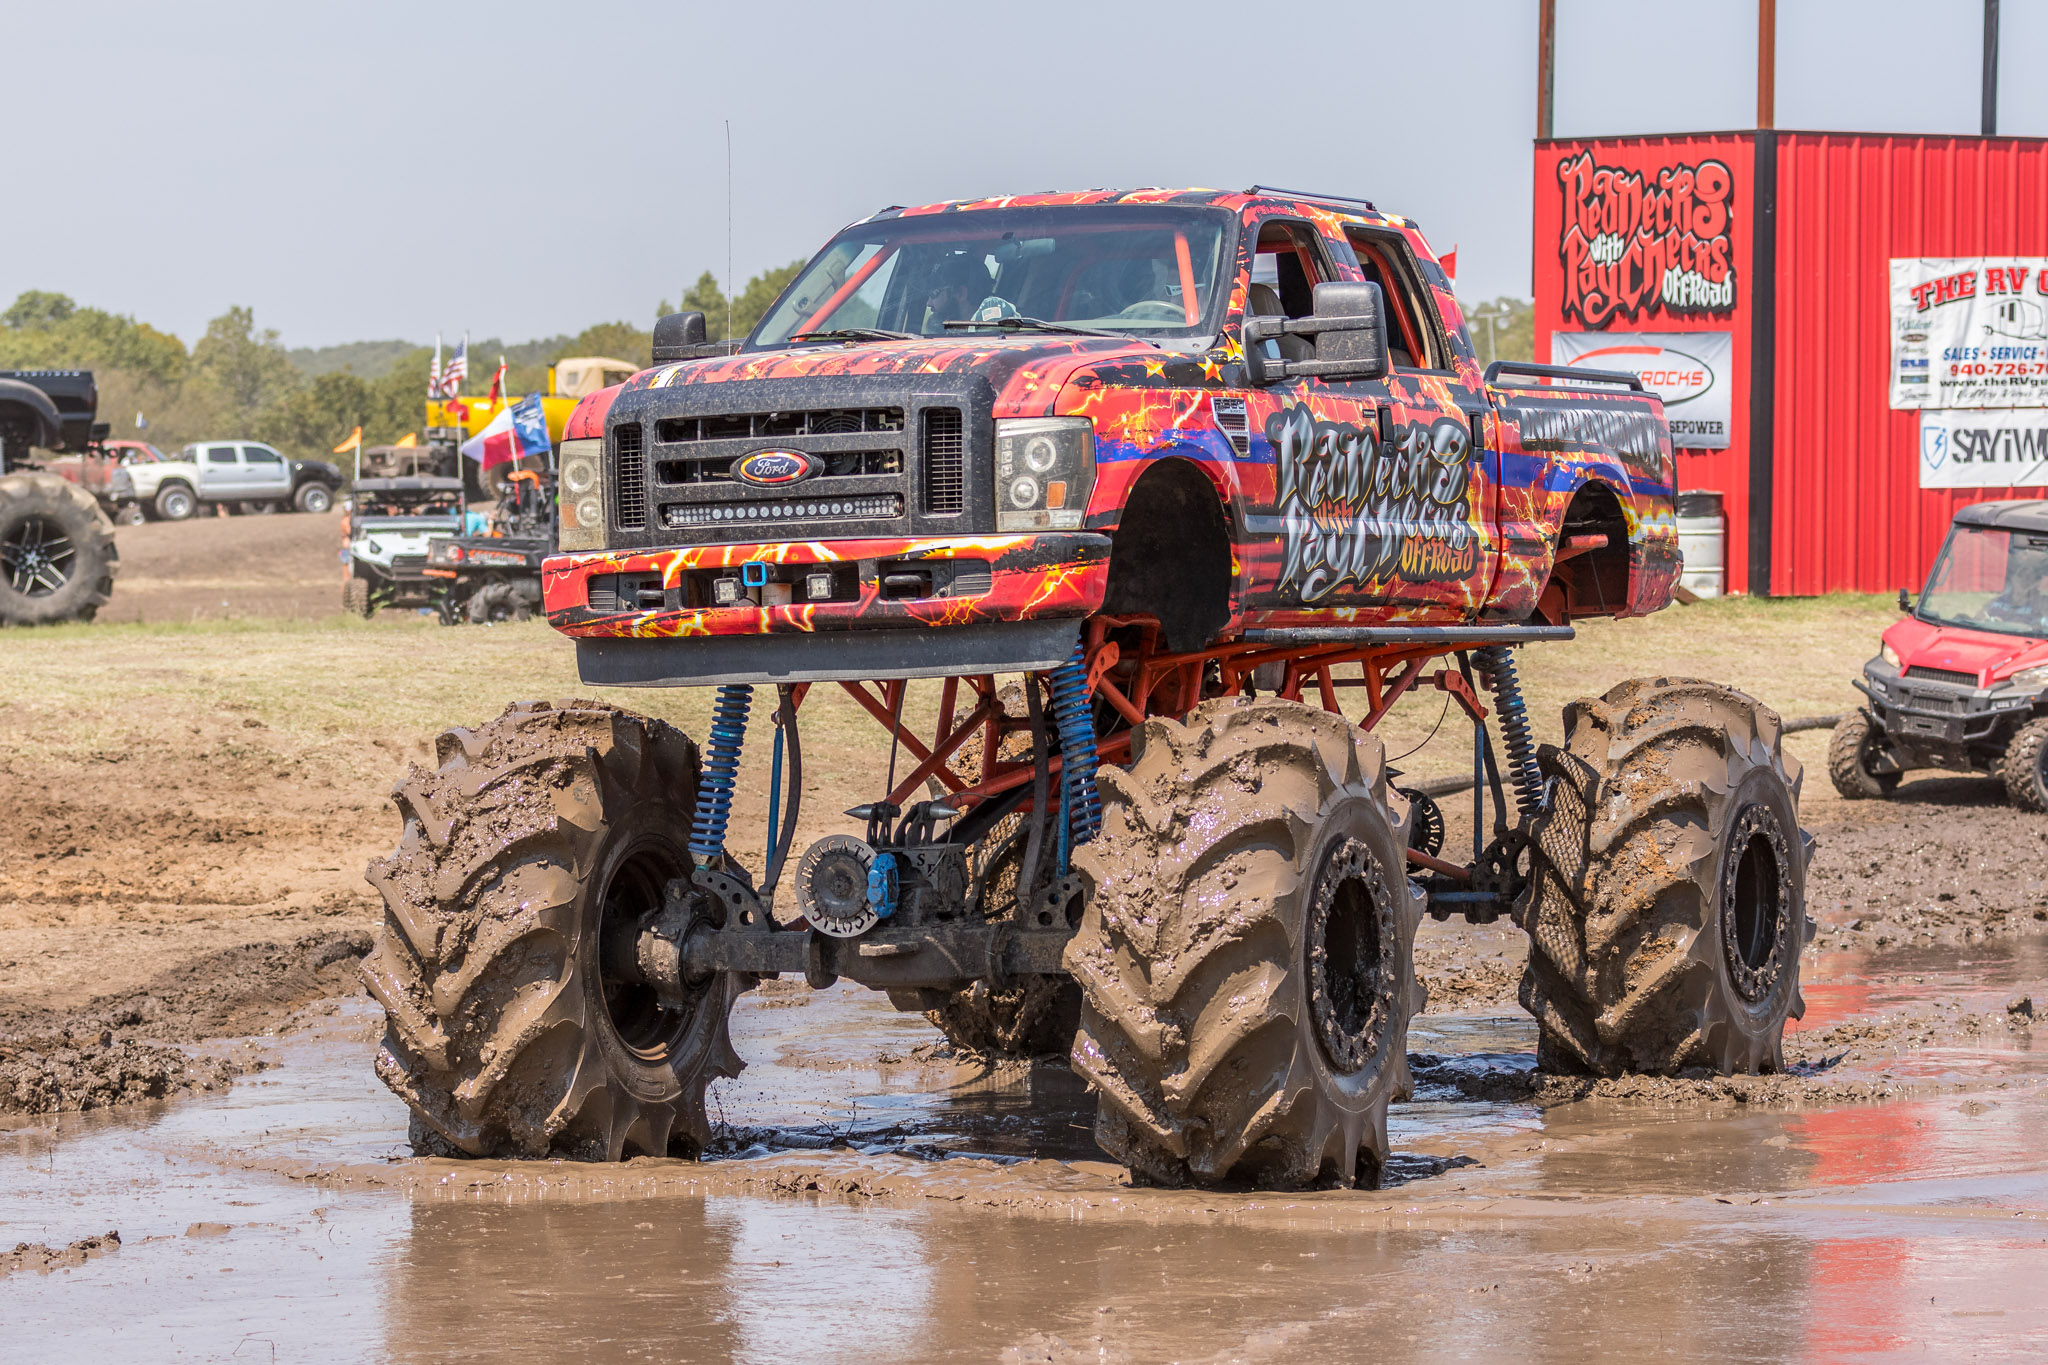 Monster truck parked in mud